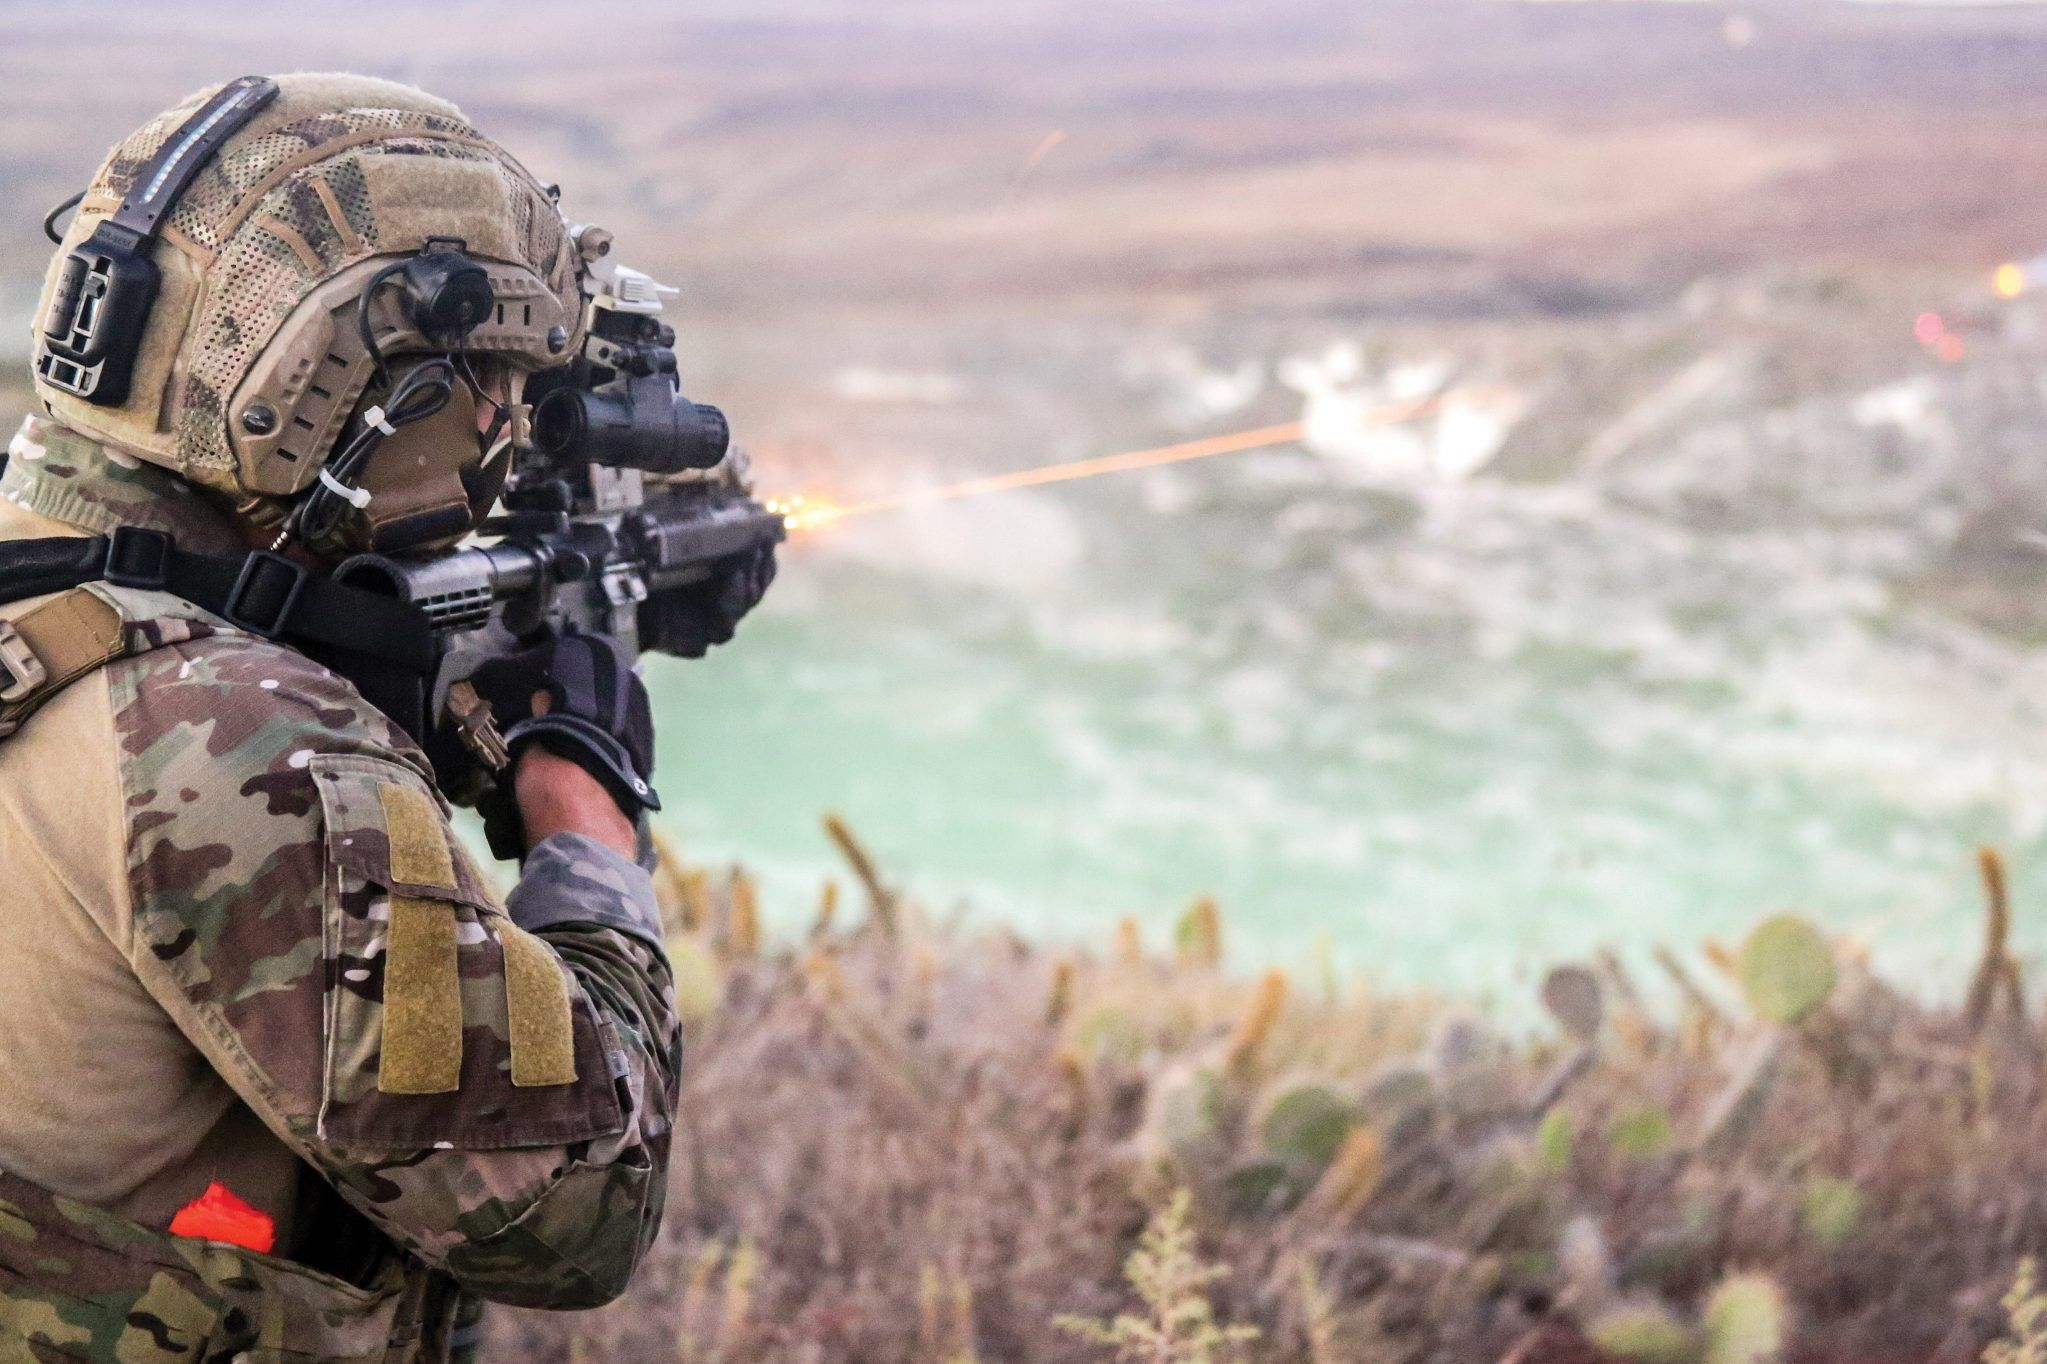 Us Army Sf On The Range In 2020 Military Special Forces Us Special Forces Military Units